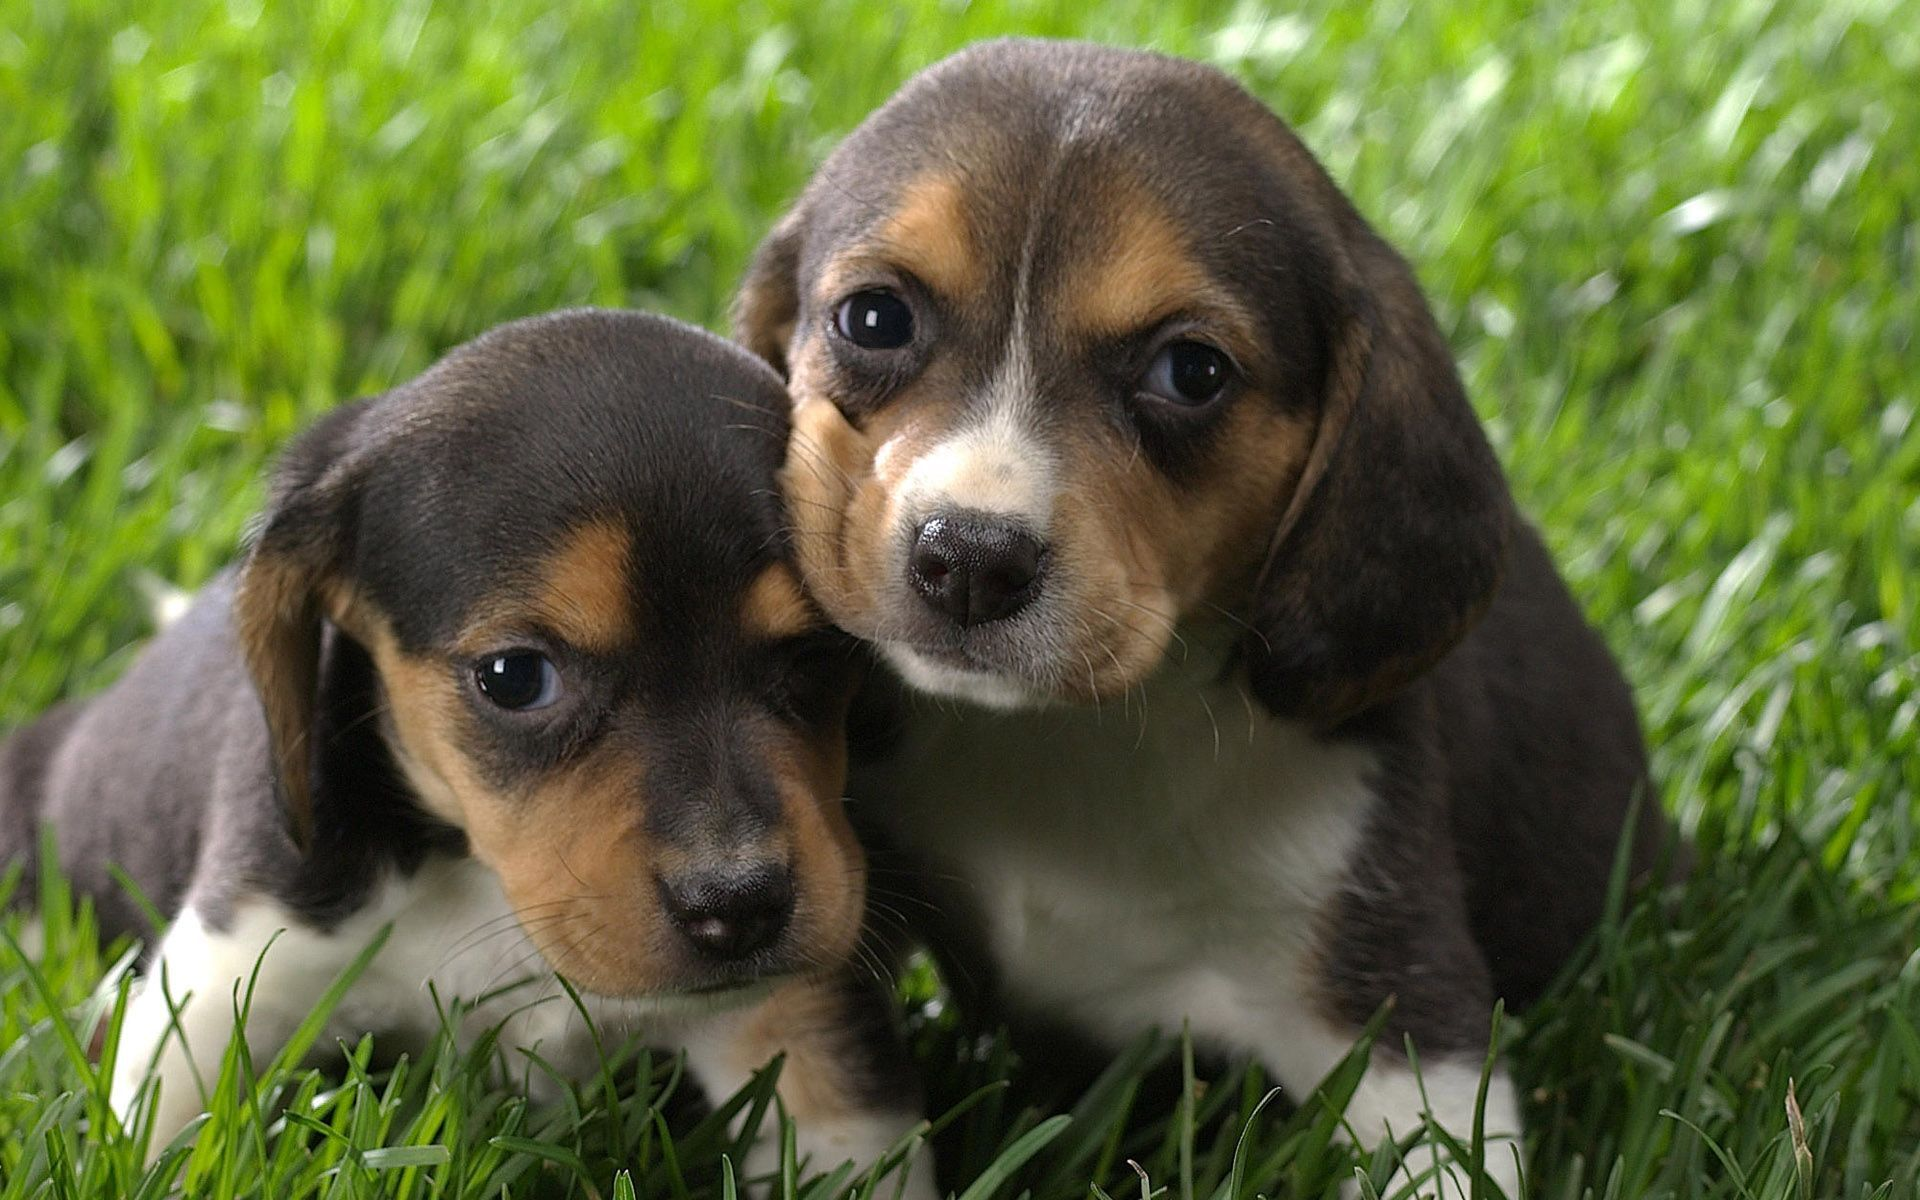 Most Inspiring Tiny Beagle Adorable Dog - beagle-puppies  Trends_38533  .jpg